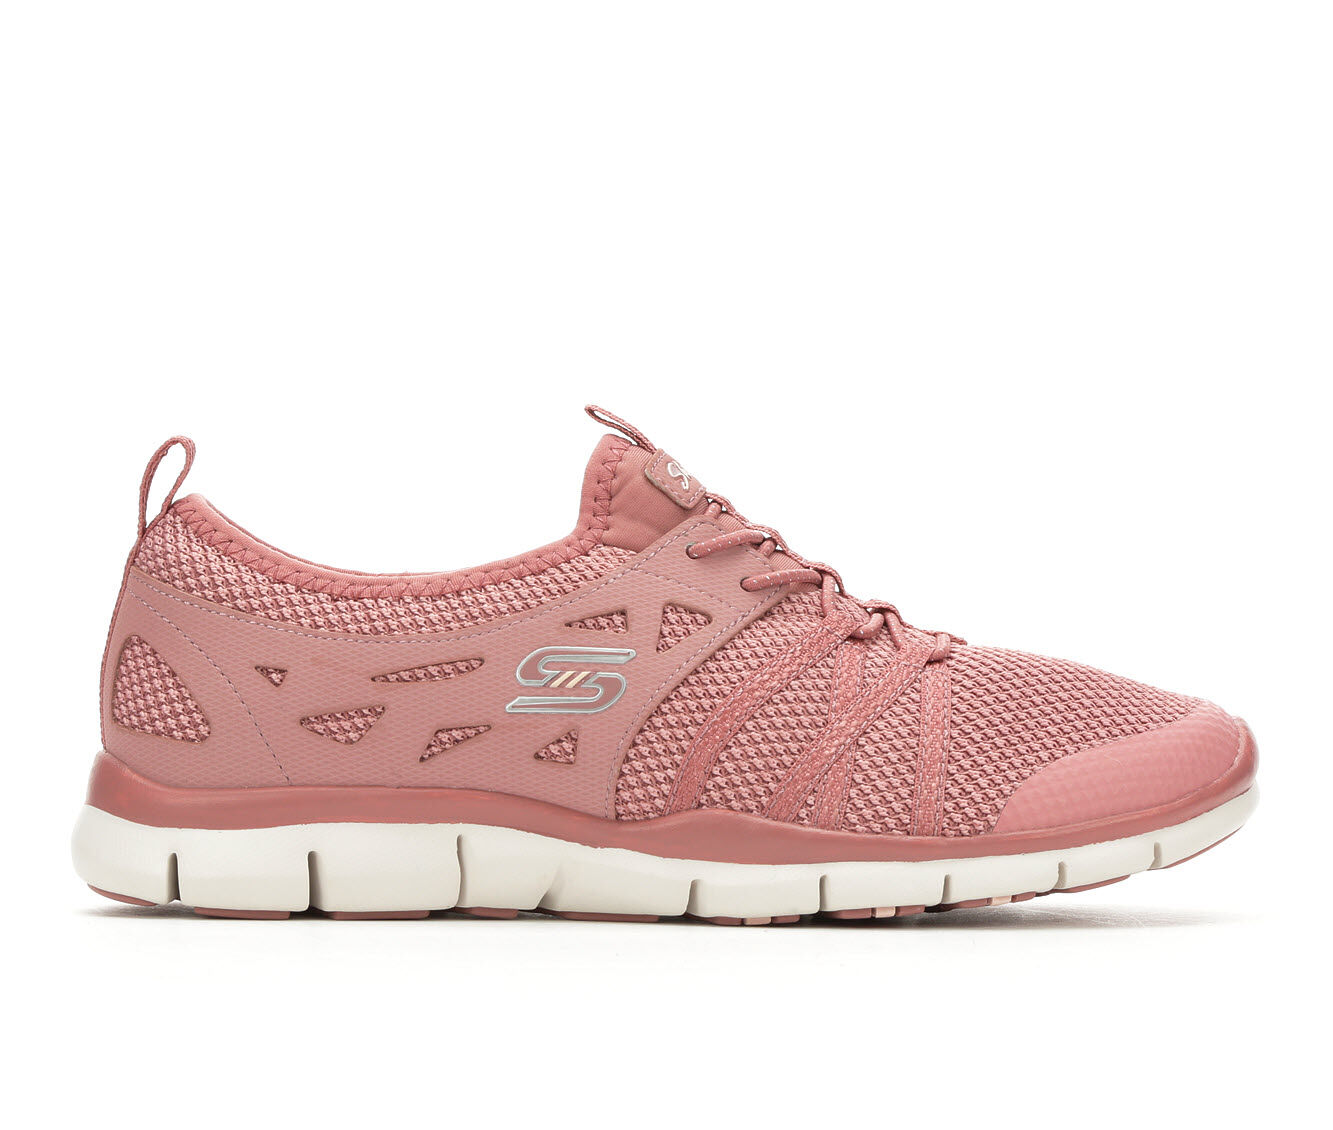 Buying New Women's Skechers What A Sight 23360 Slip-On Sneakers Rose